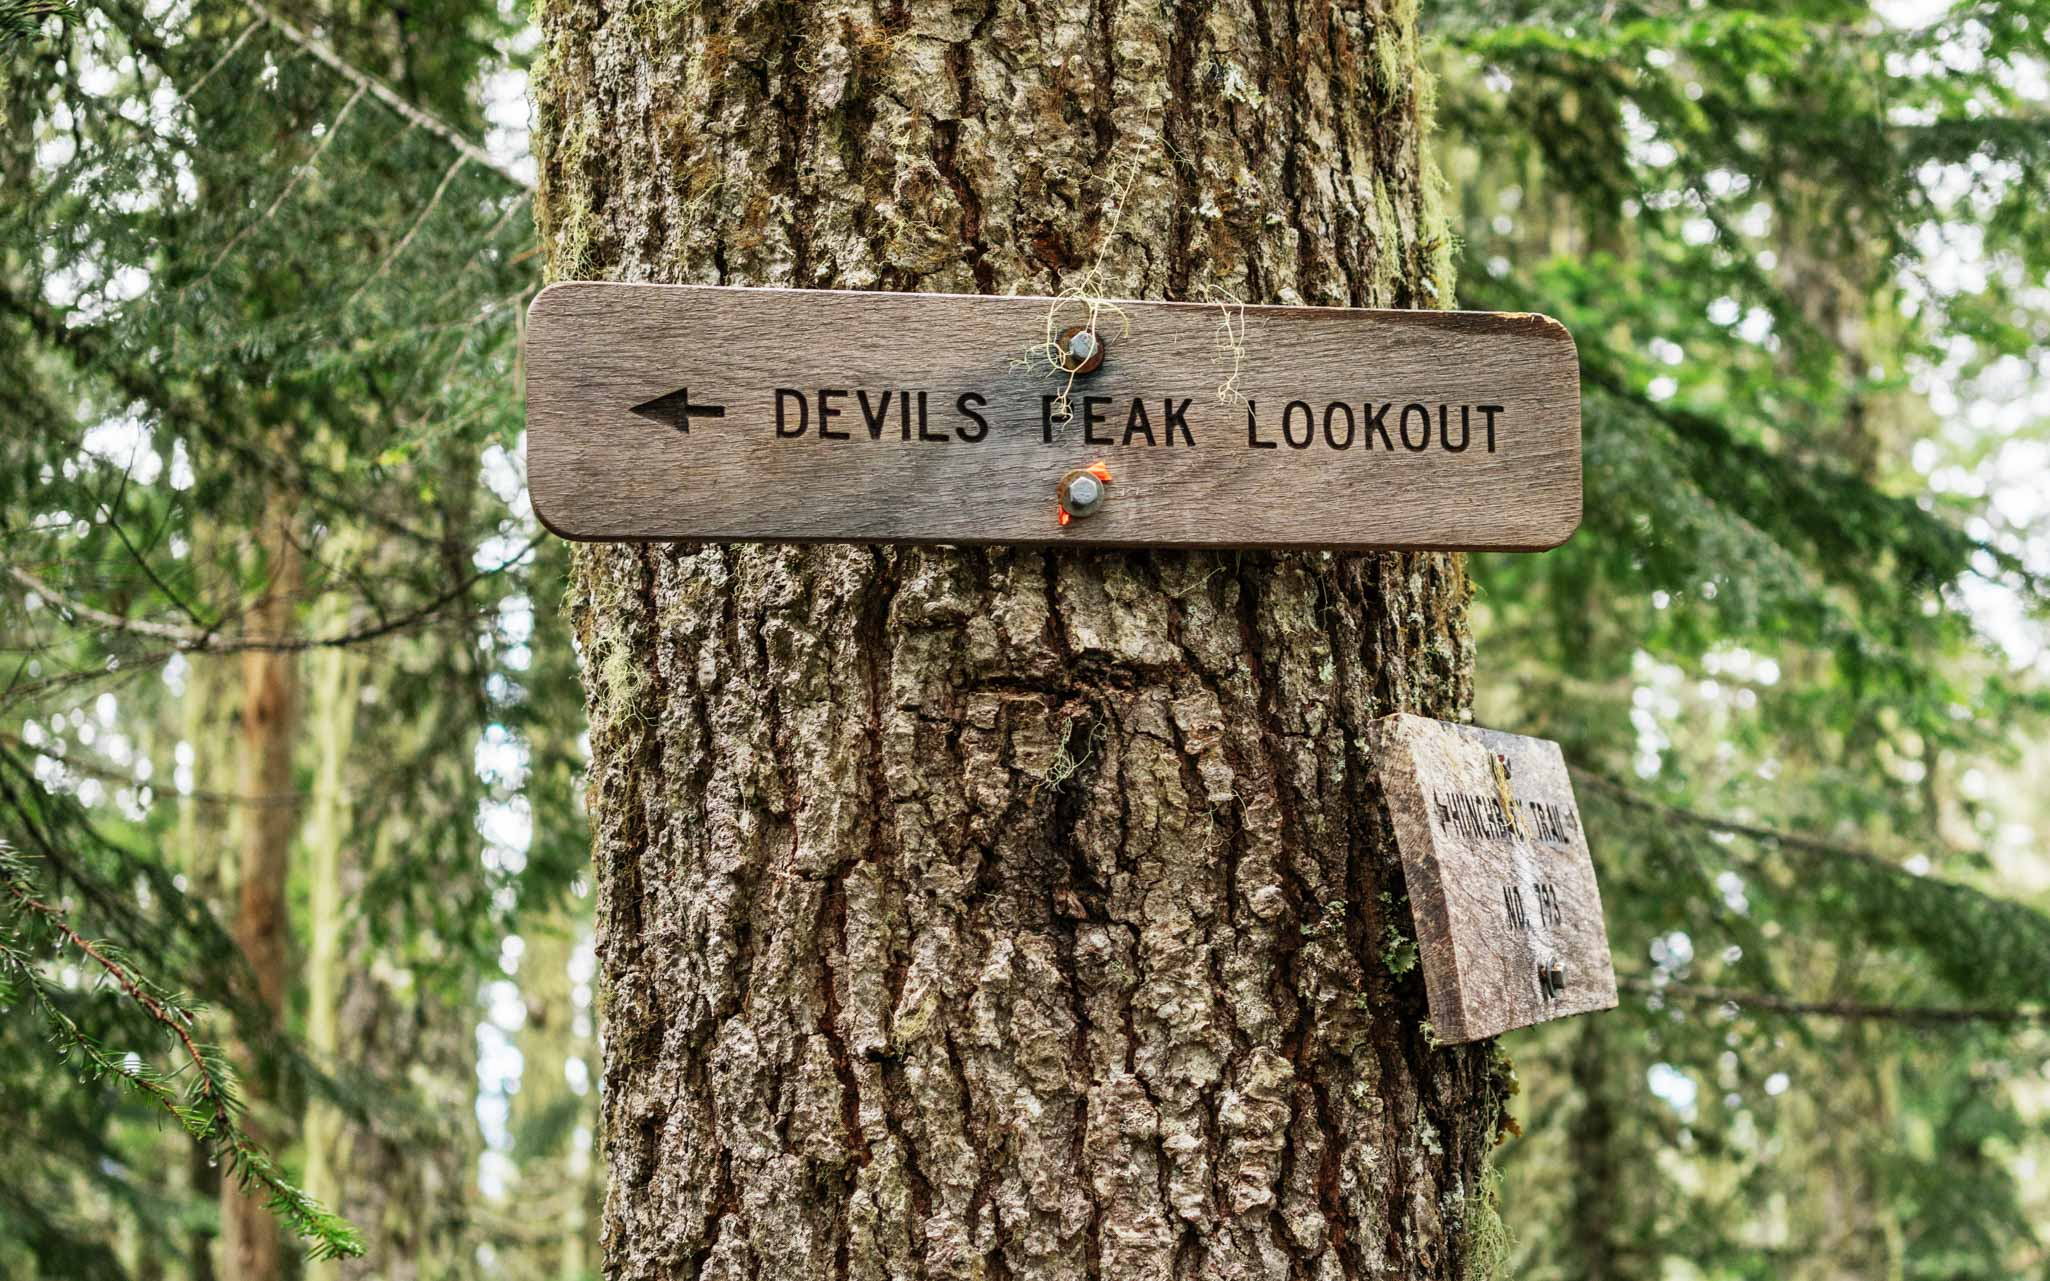 Devils Peak Lookout sign